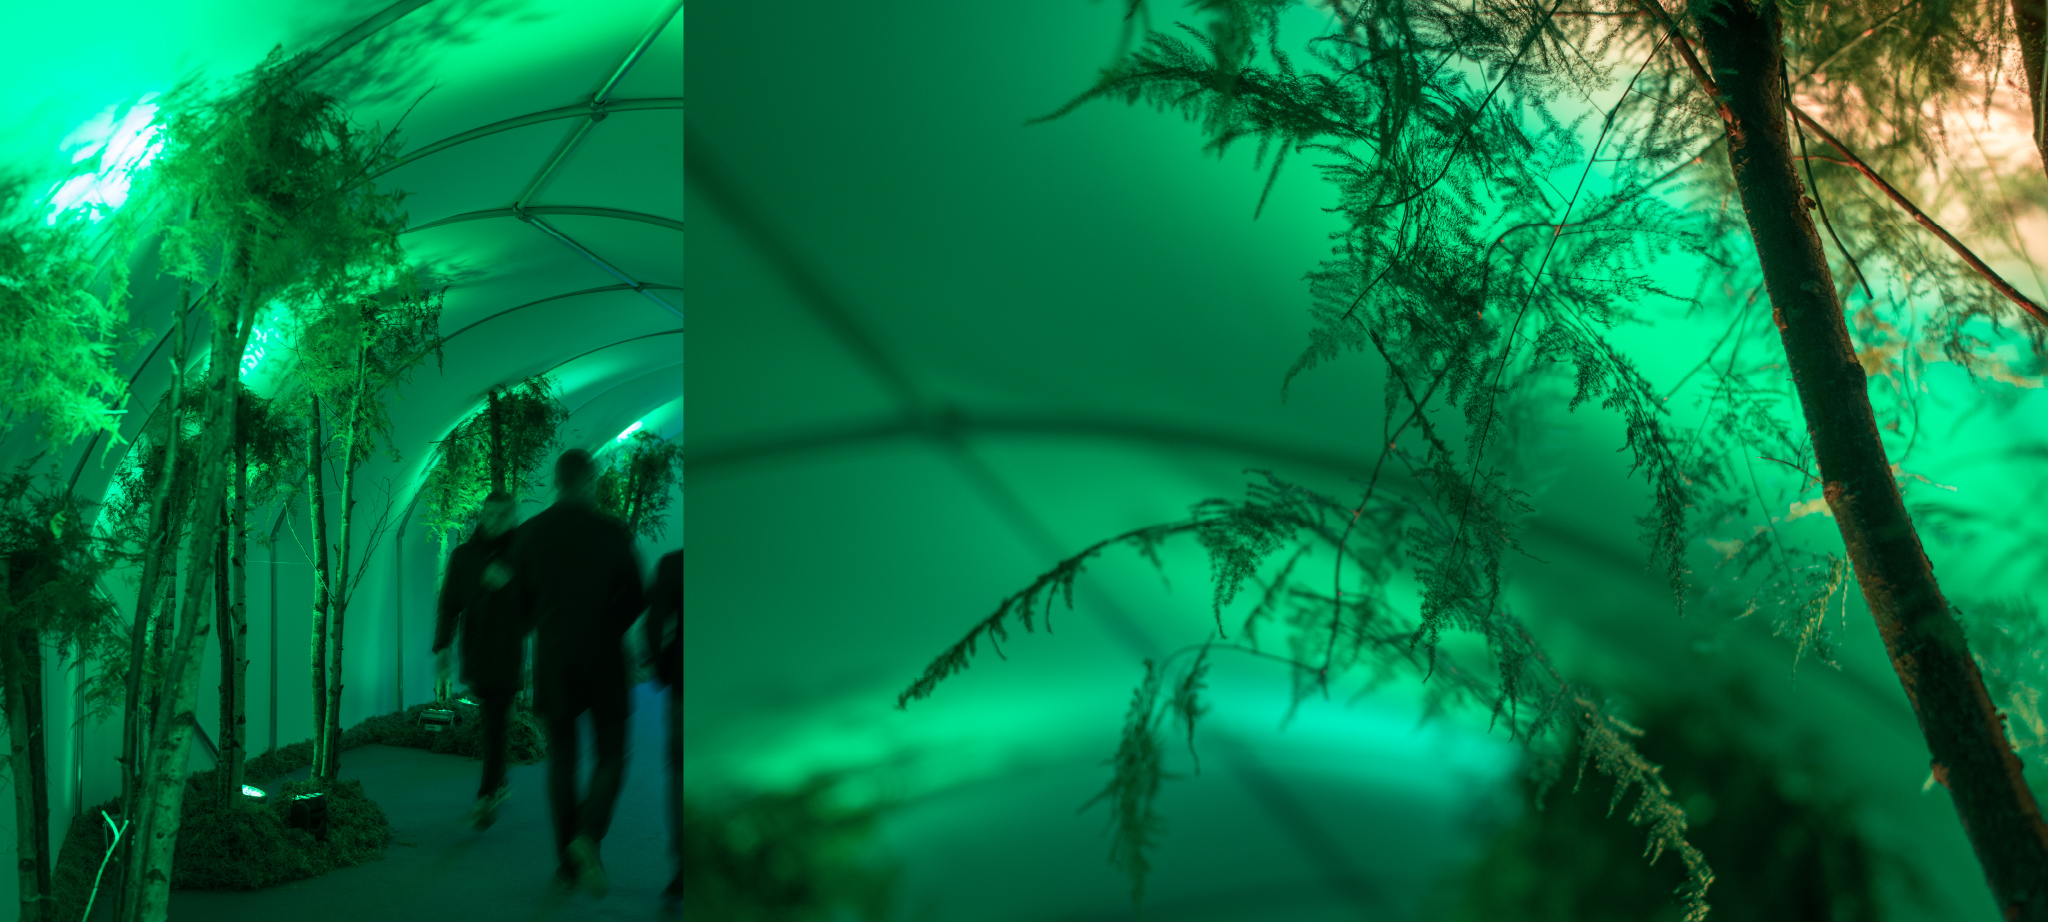 close up of the green entrance tunnel